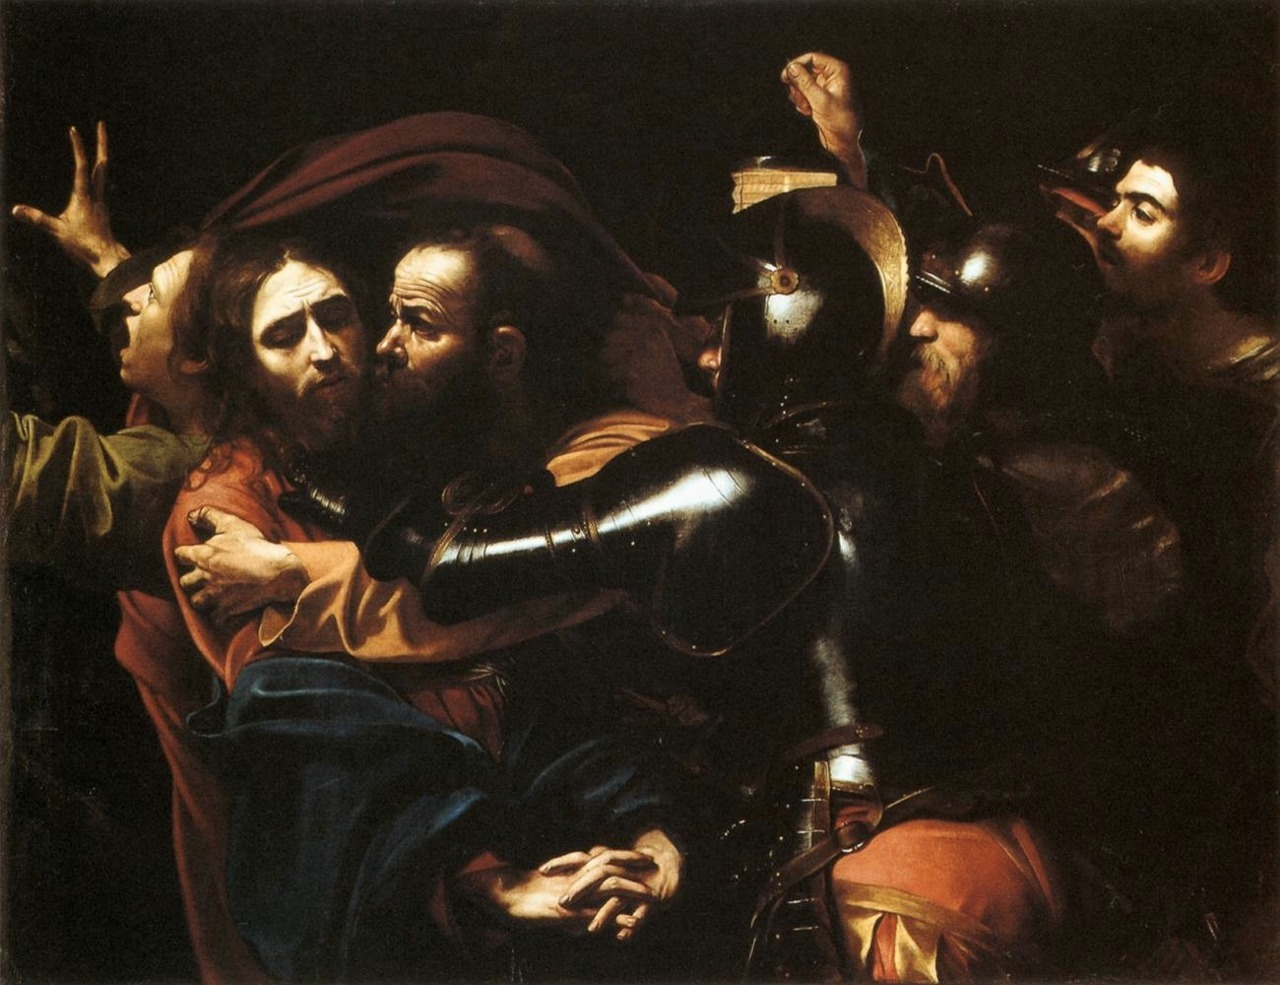 The Taking of Christ (1602), oil on canvas, National Gallery of Ireland, Dublin | artwork by Caravaggio